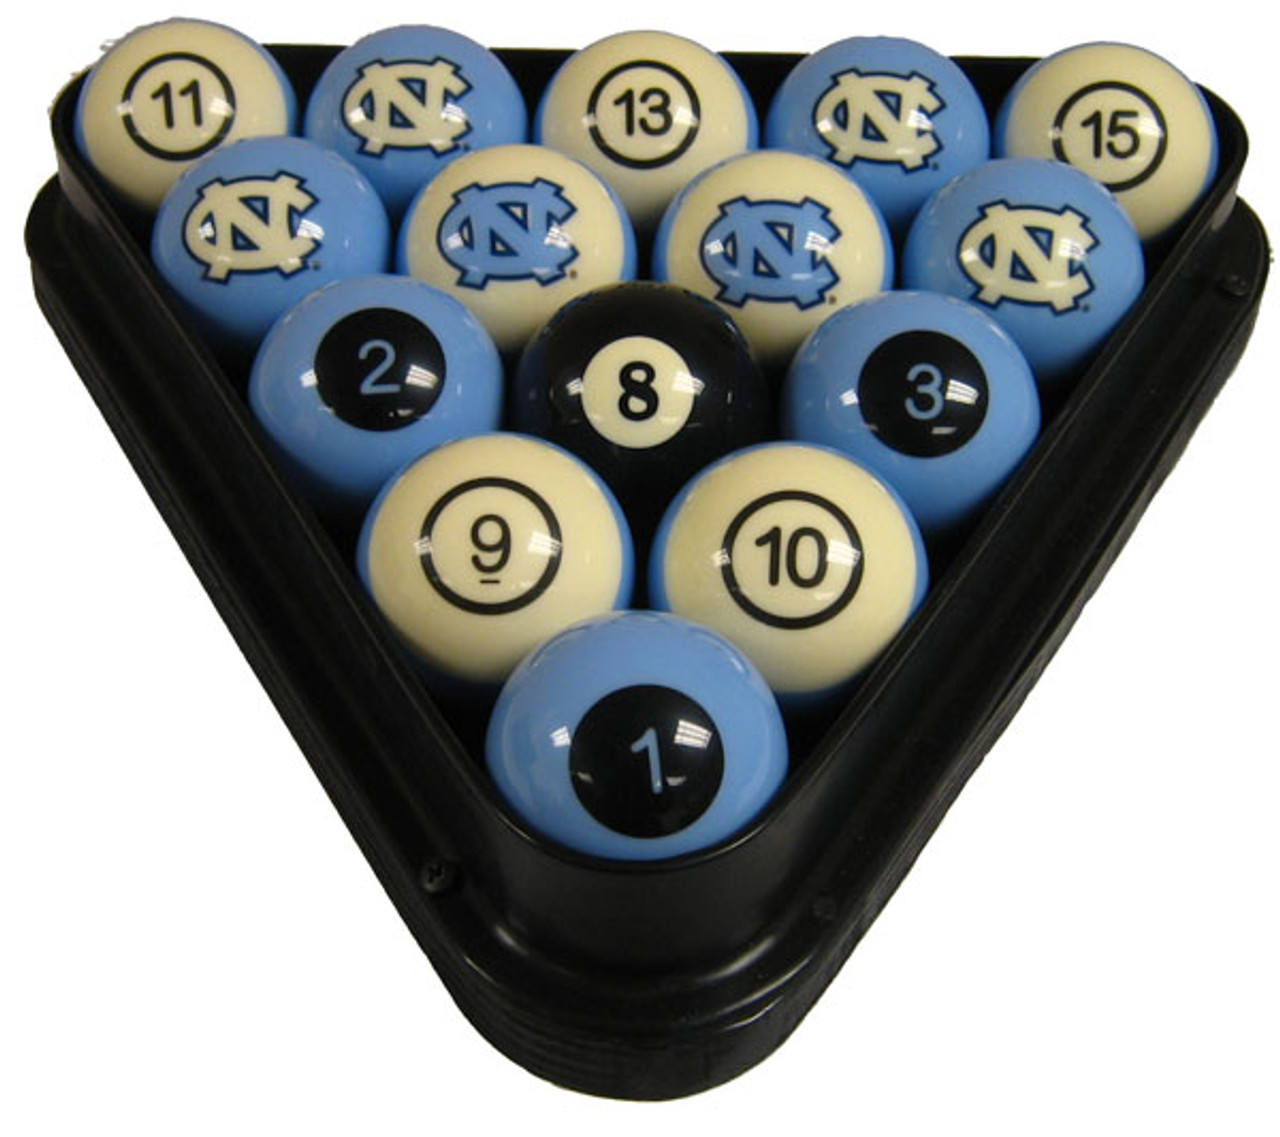 North Carolina Tar Heels Numbered Billiard Ball Set